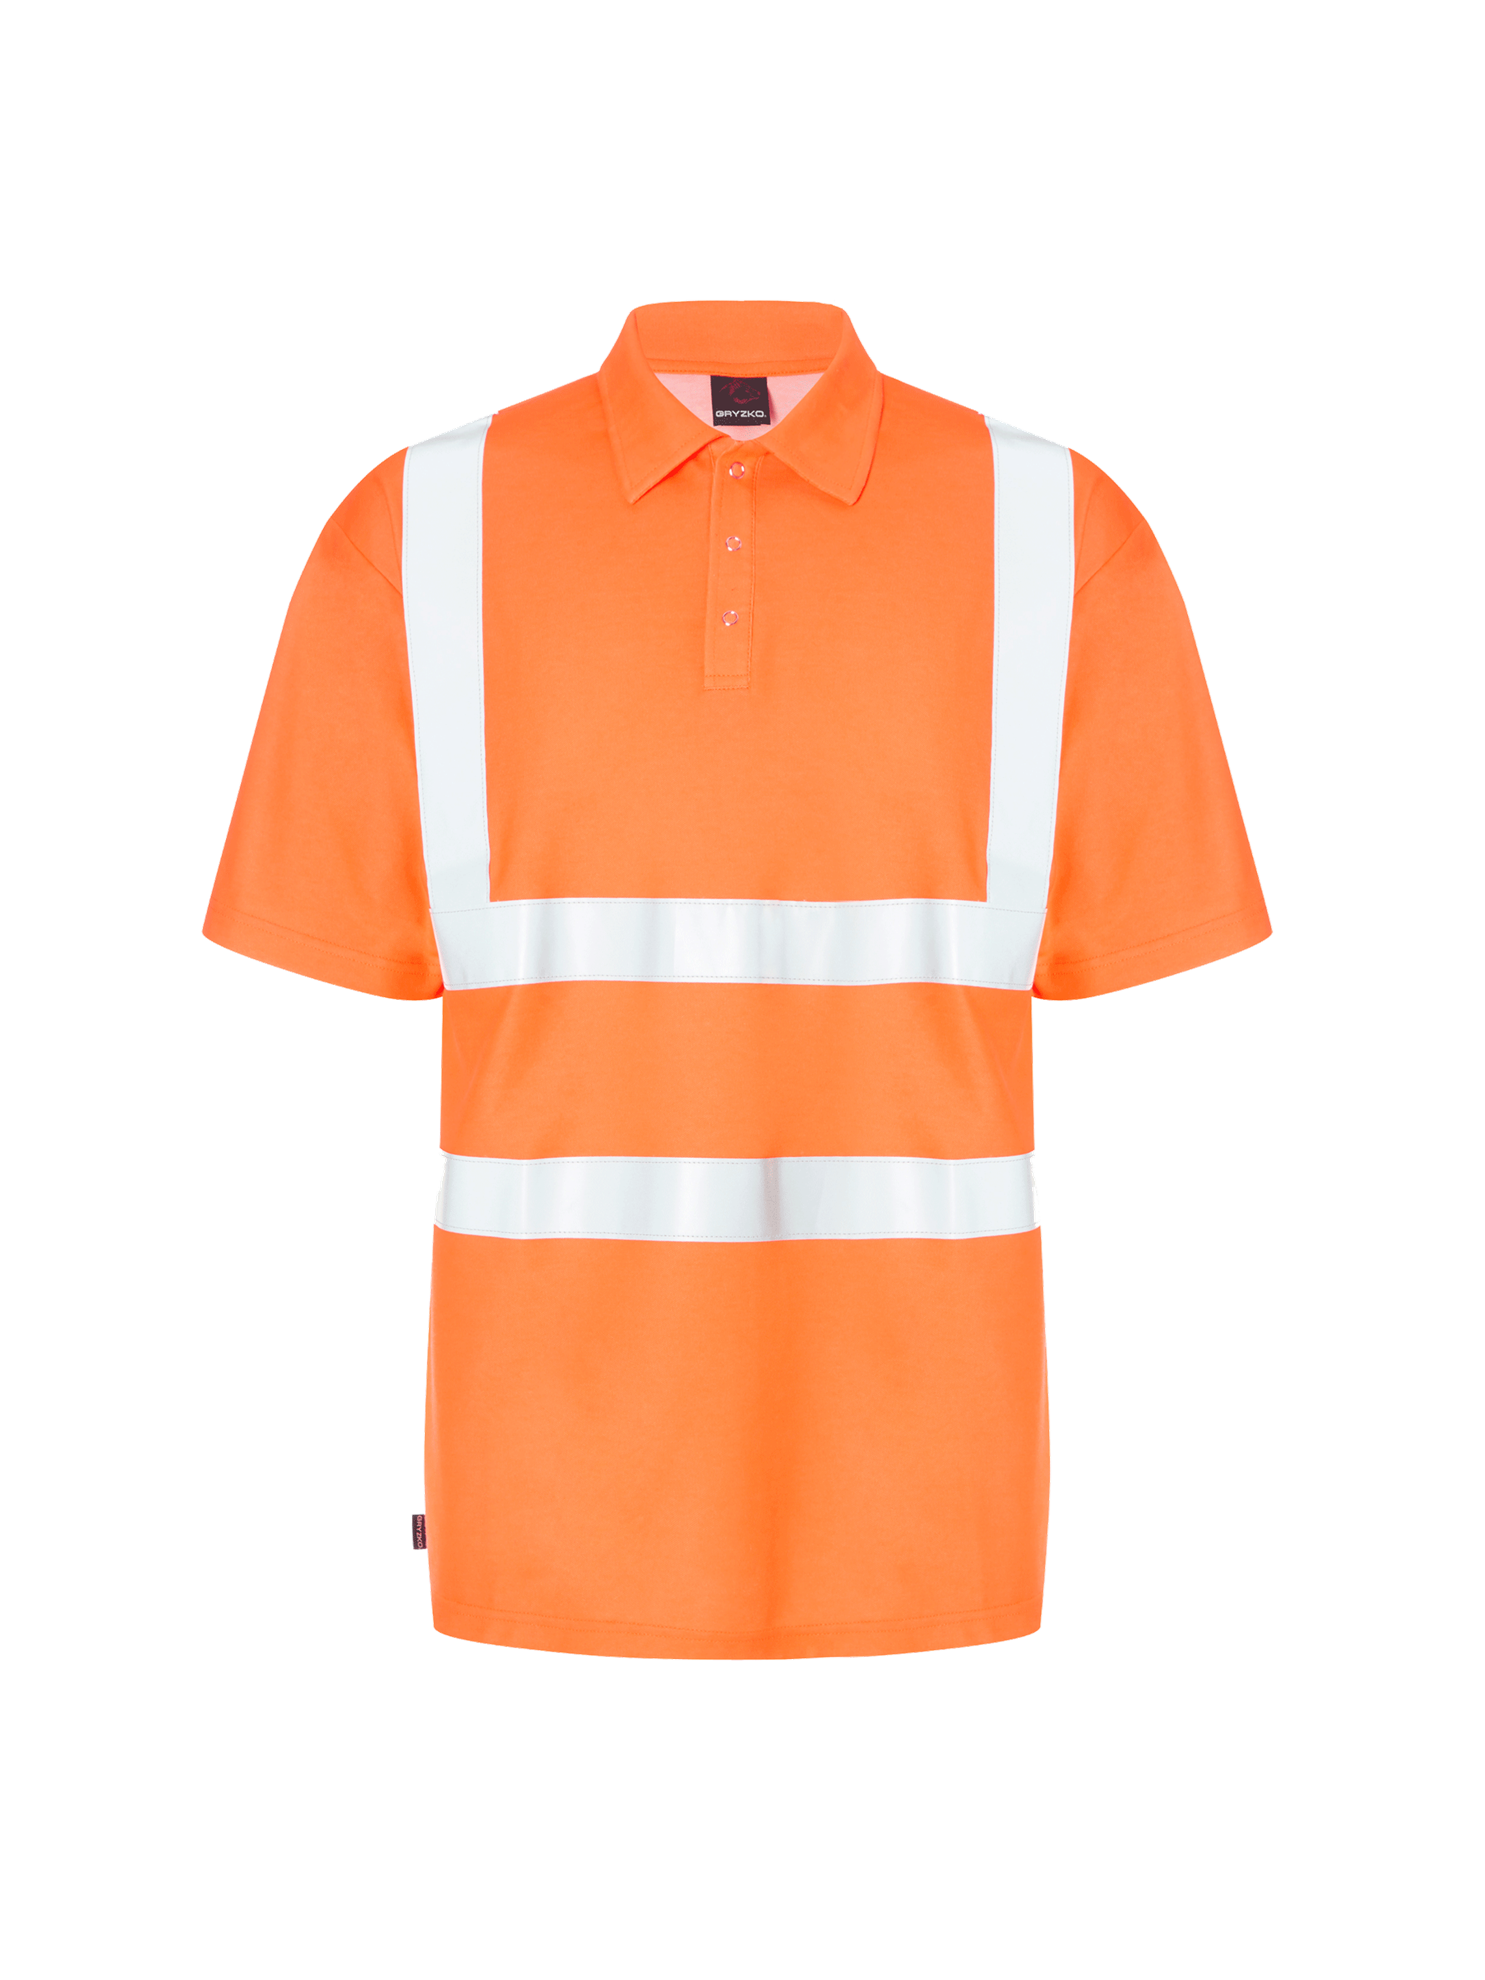 Picture of Hi-Vis Polo Short Sleeve - HV Orange